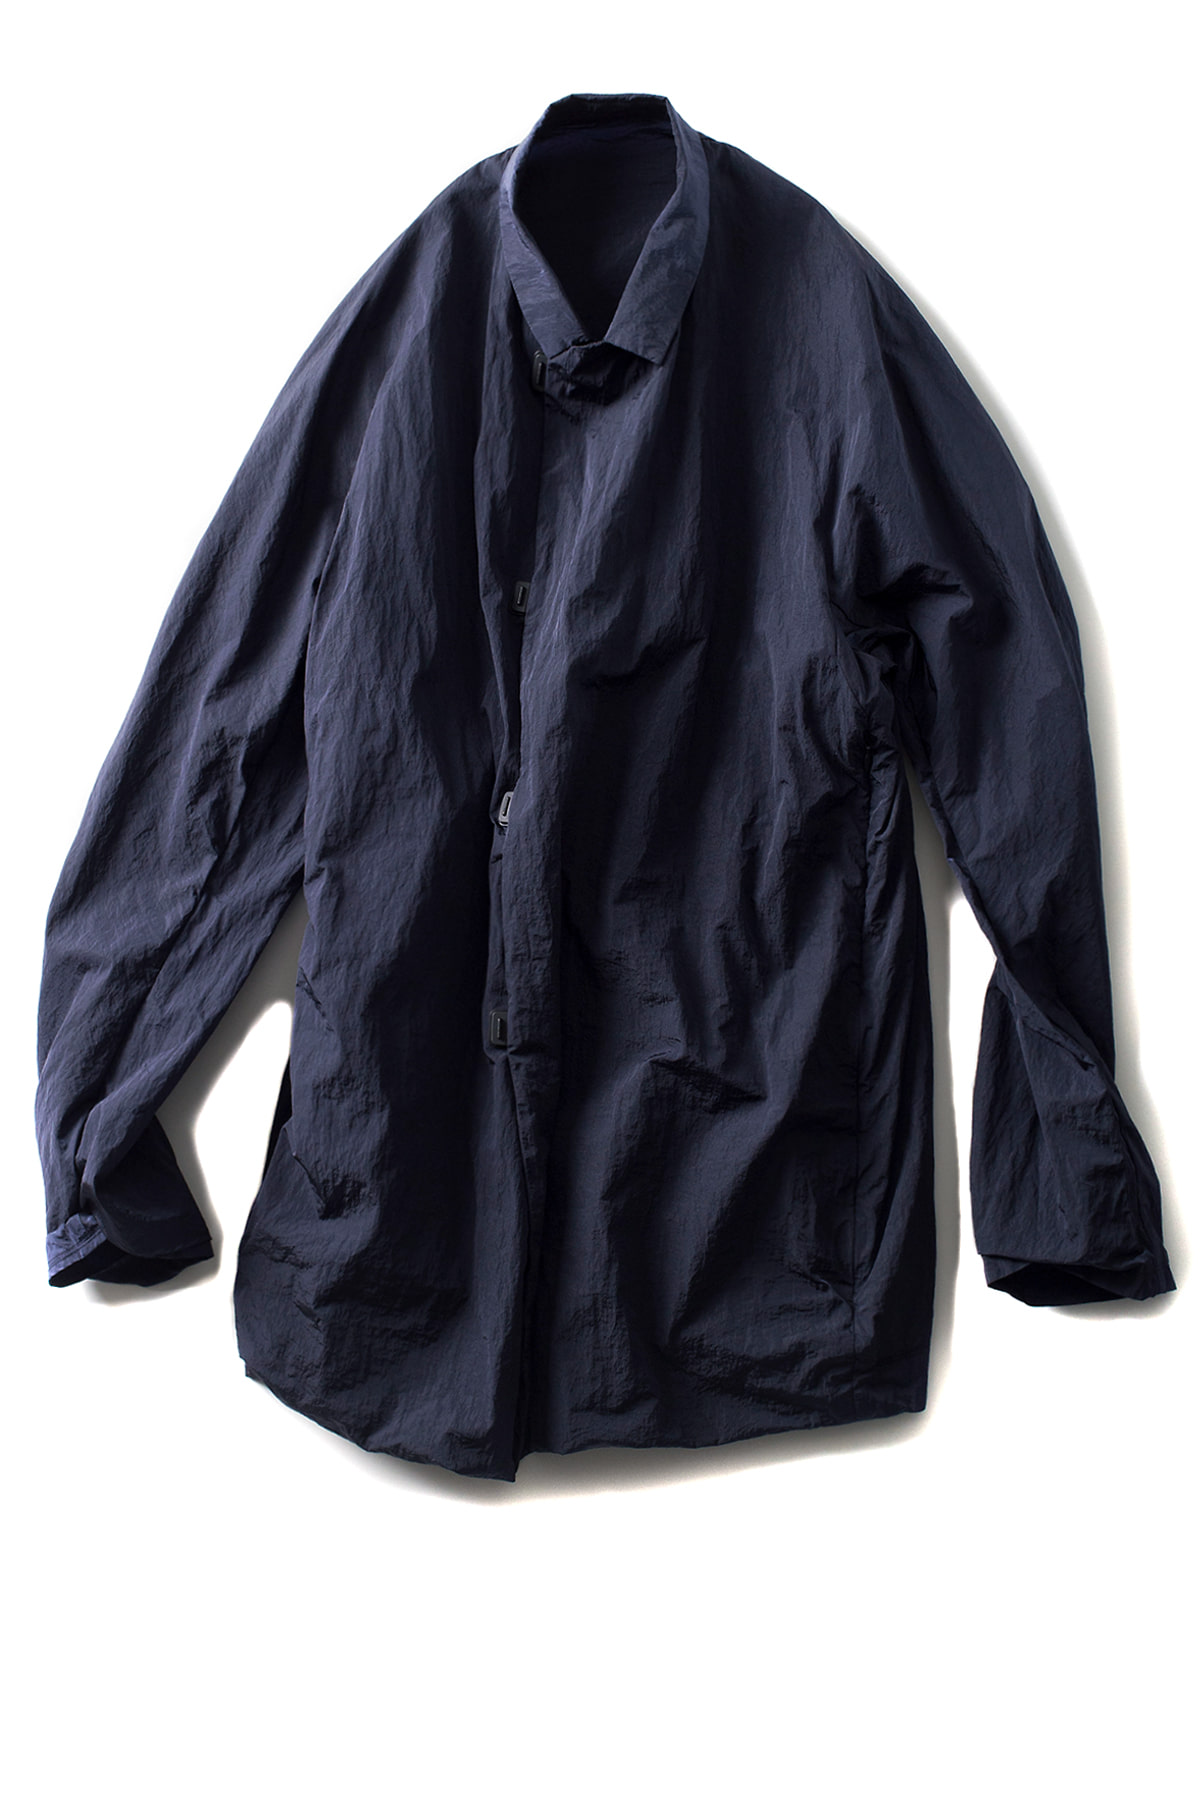 TEATORA : Wallet Coat S/L LP (Metallic Navy)